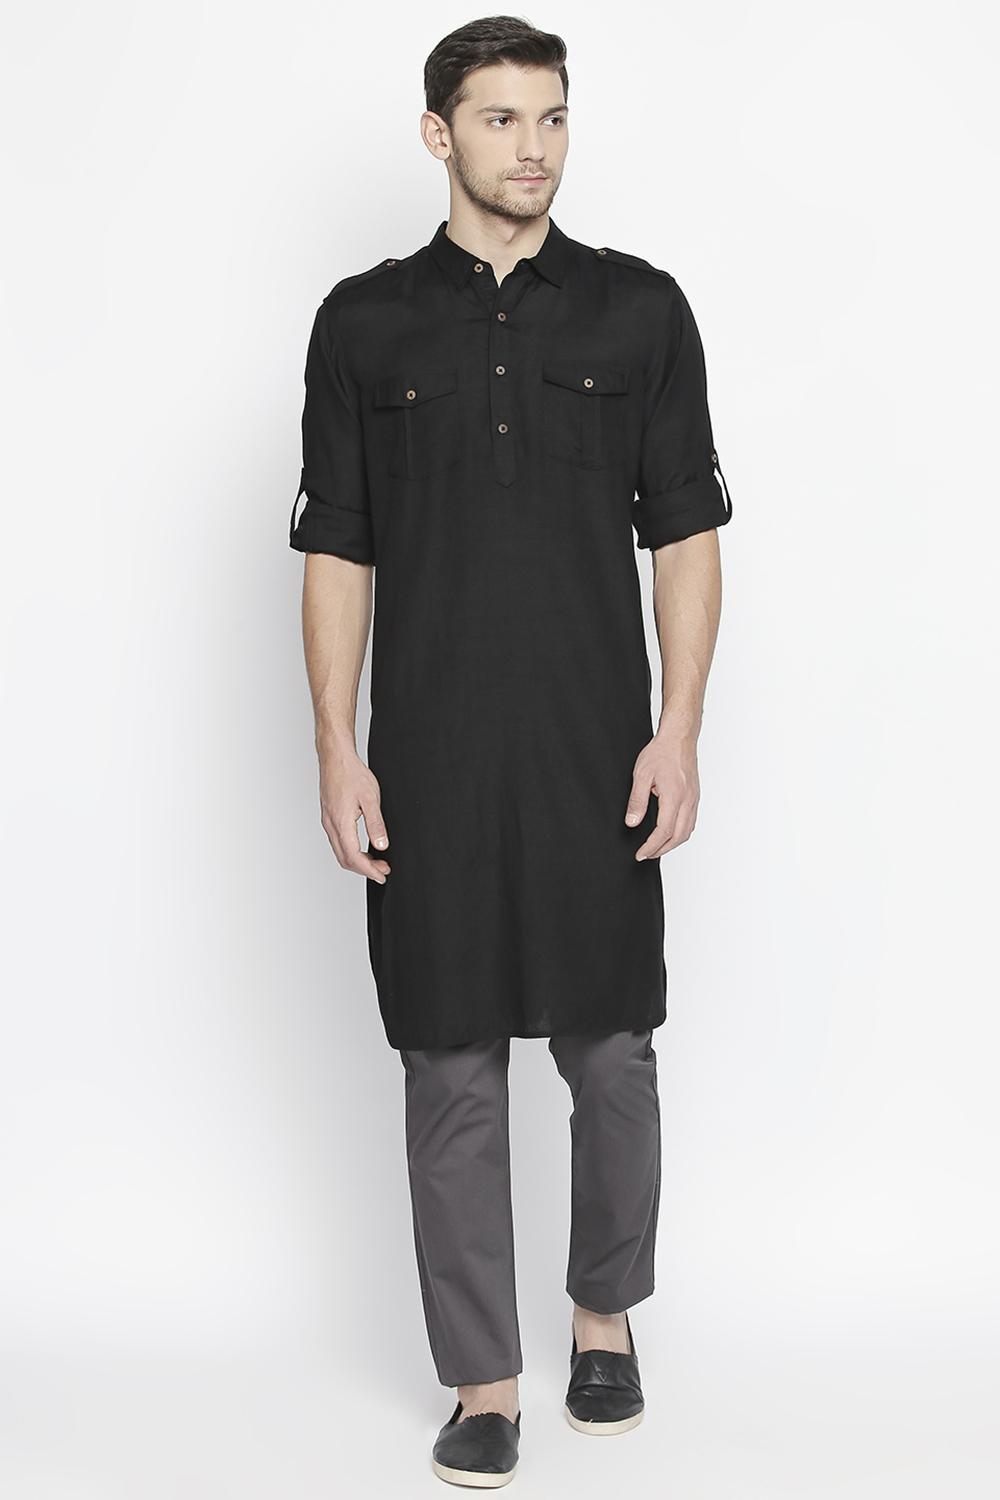 ad4c6c3e56 Buy Men Ethnic wear Online in India - Online Store for Ethnic Wear ...